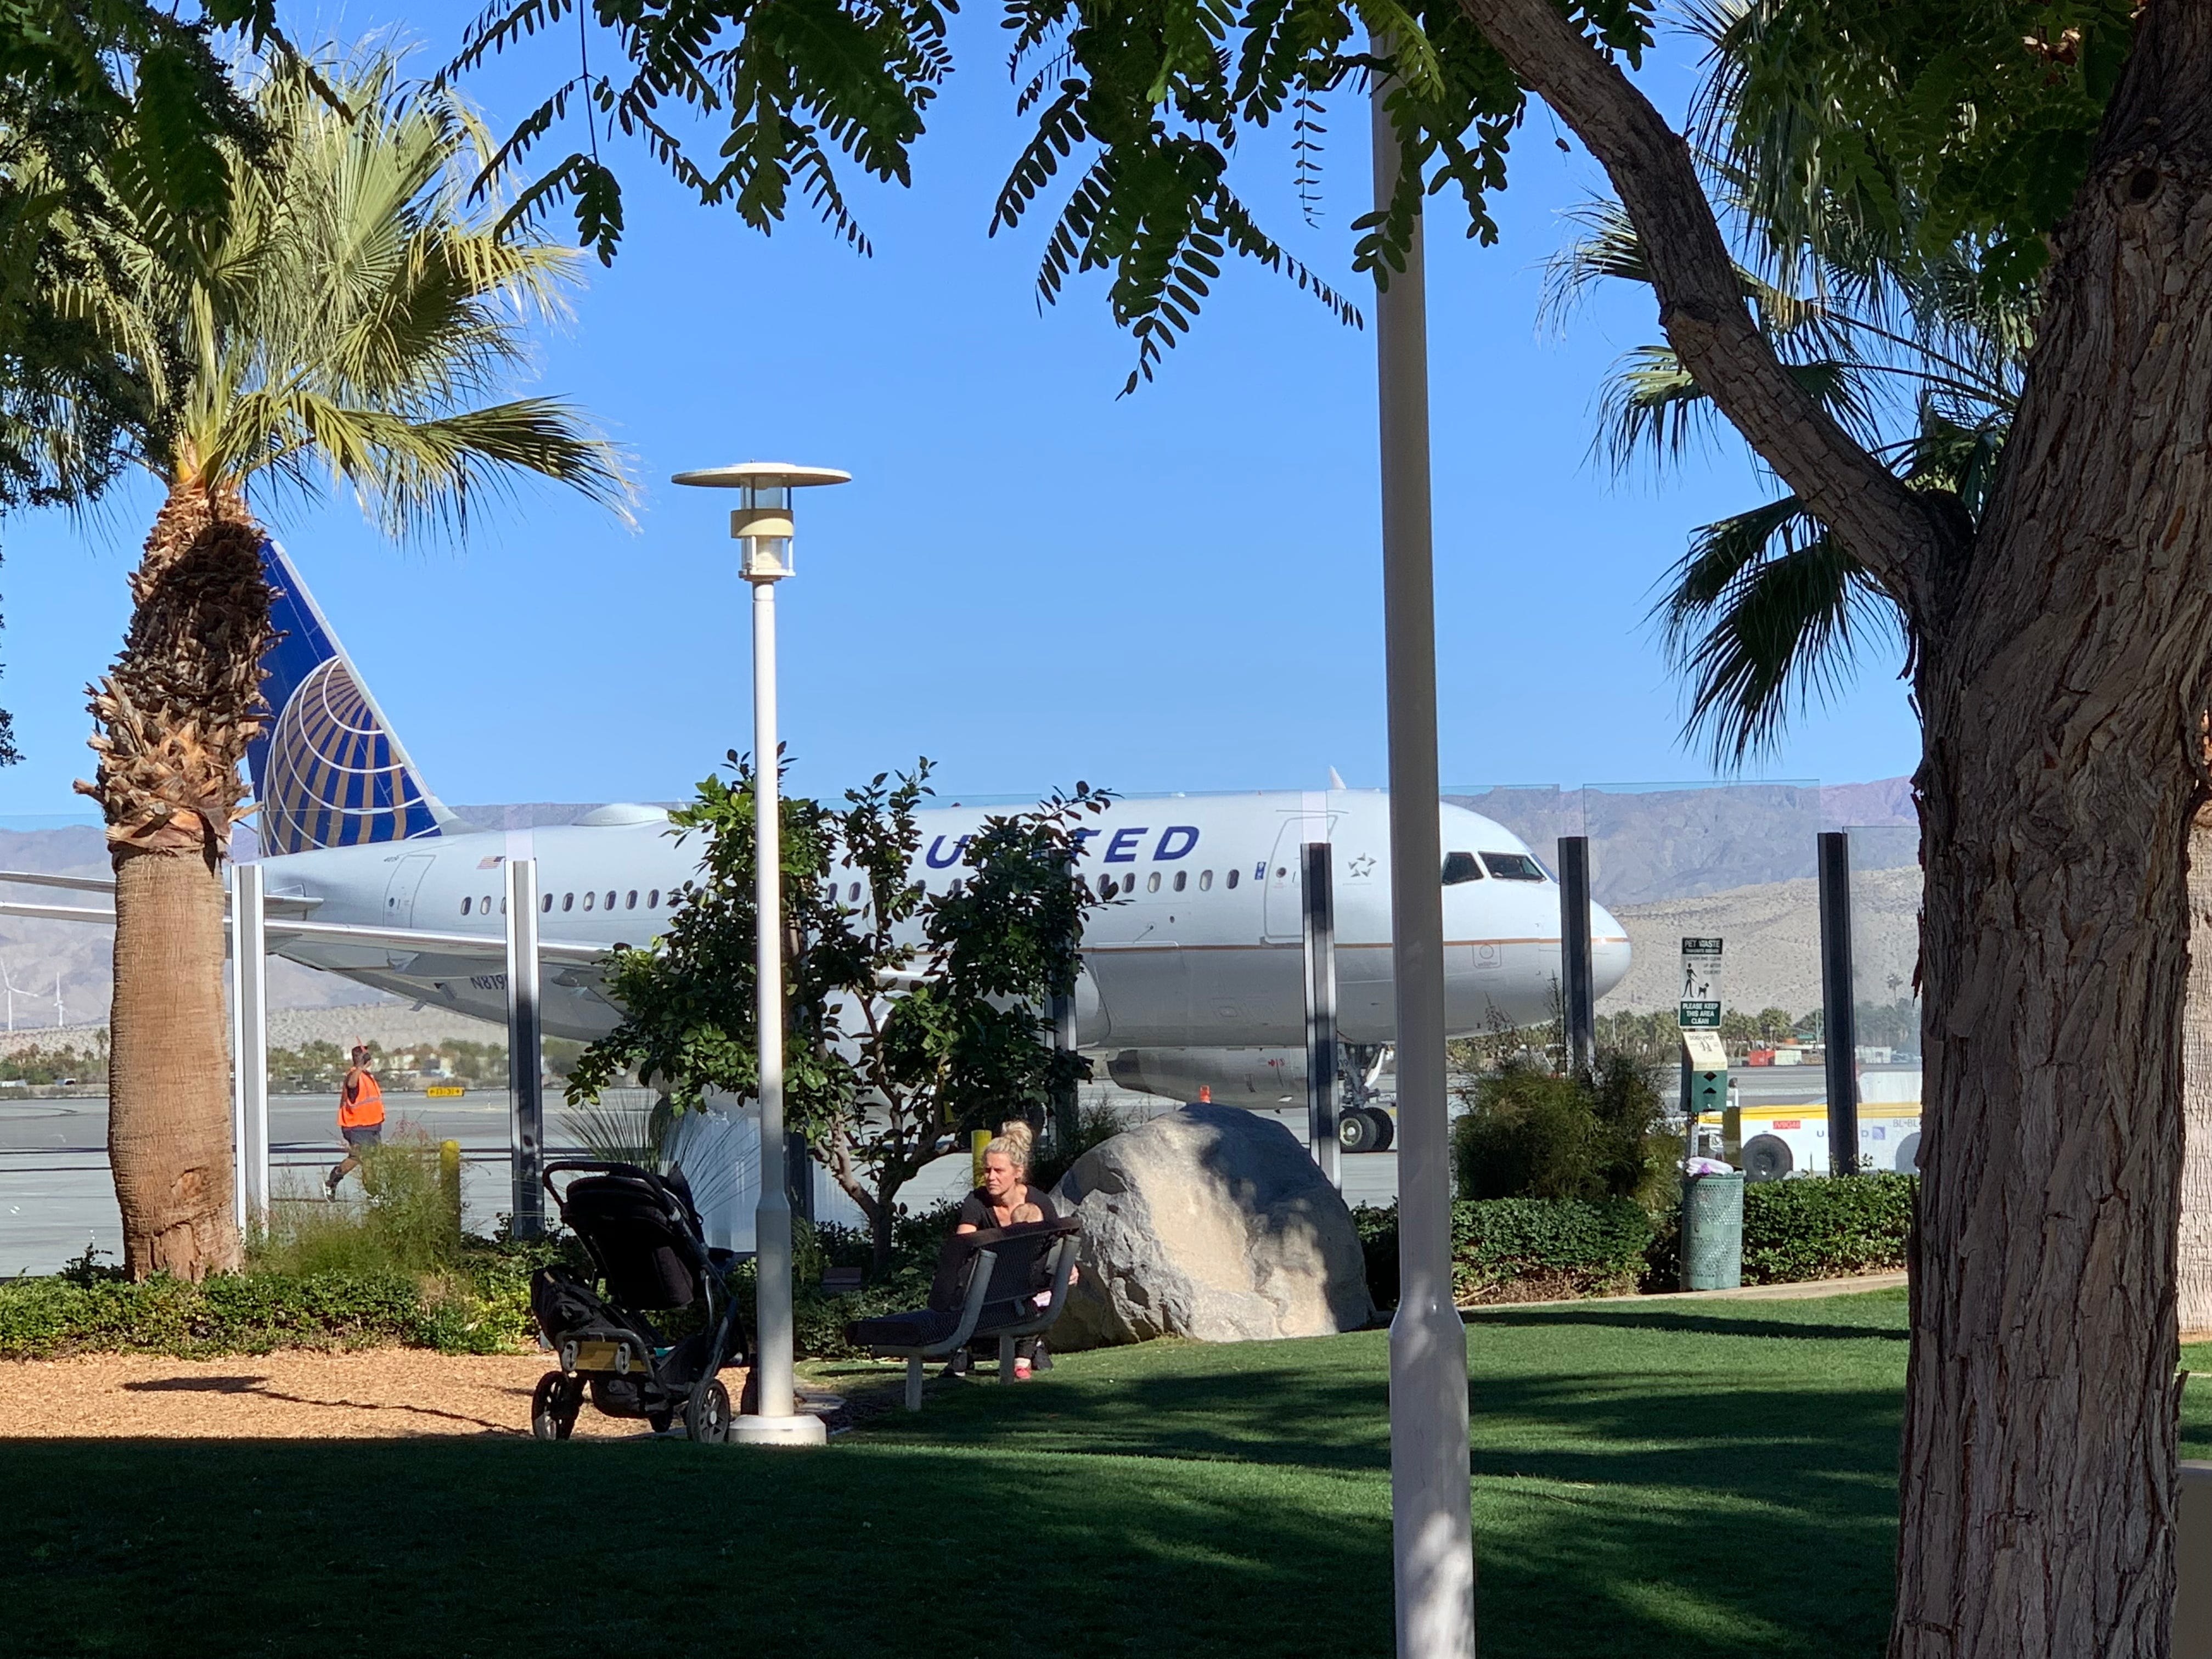 A United Airbus A319 pulls up to the open-air terminal at Palm Springs International Airport in California on Jan. 2, 2019.